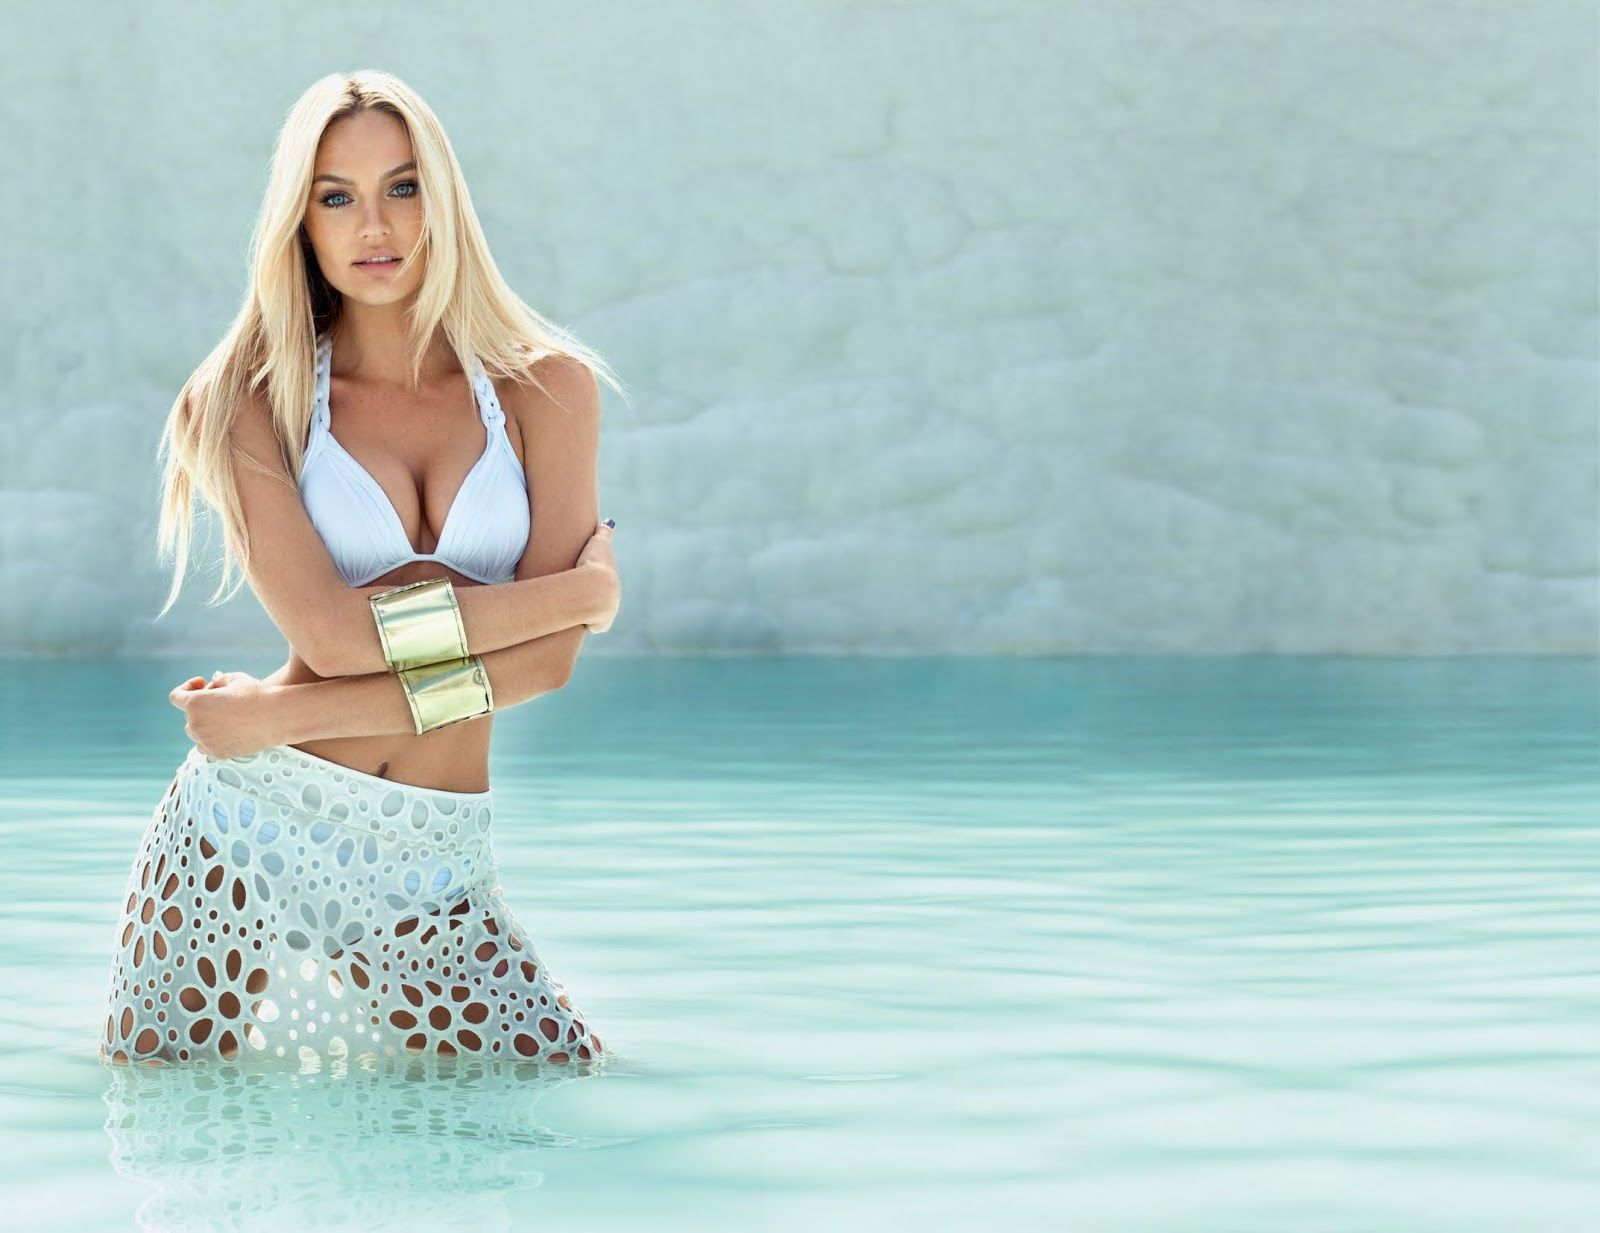 candice-swanepoel-bikini-shoot-photos-aguadecoco_2013catalog-11